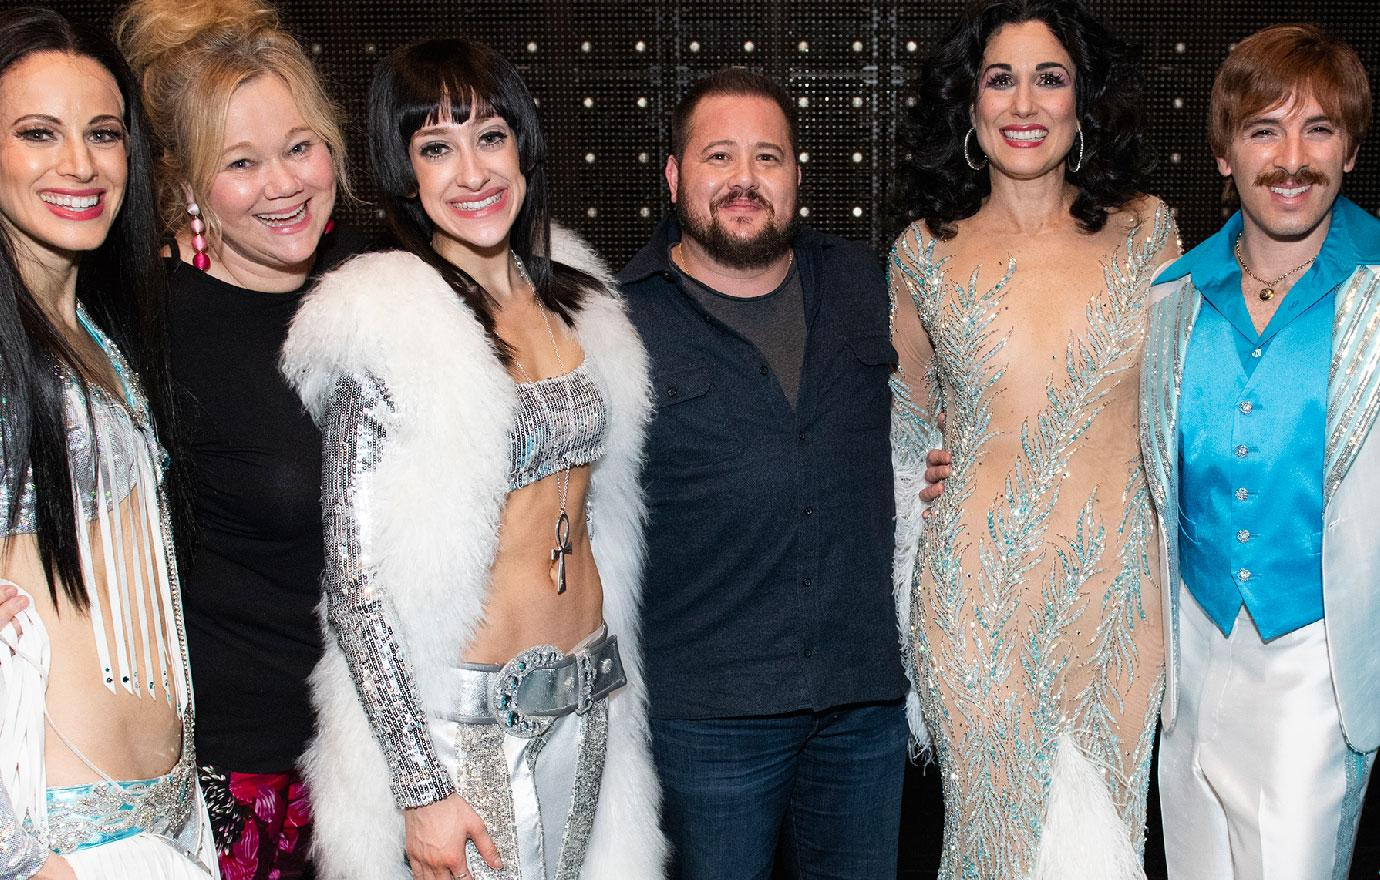 Chaz Bono Visits Backstage At Cher Show On Broadway